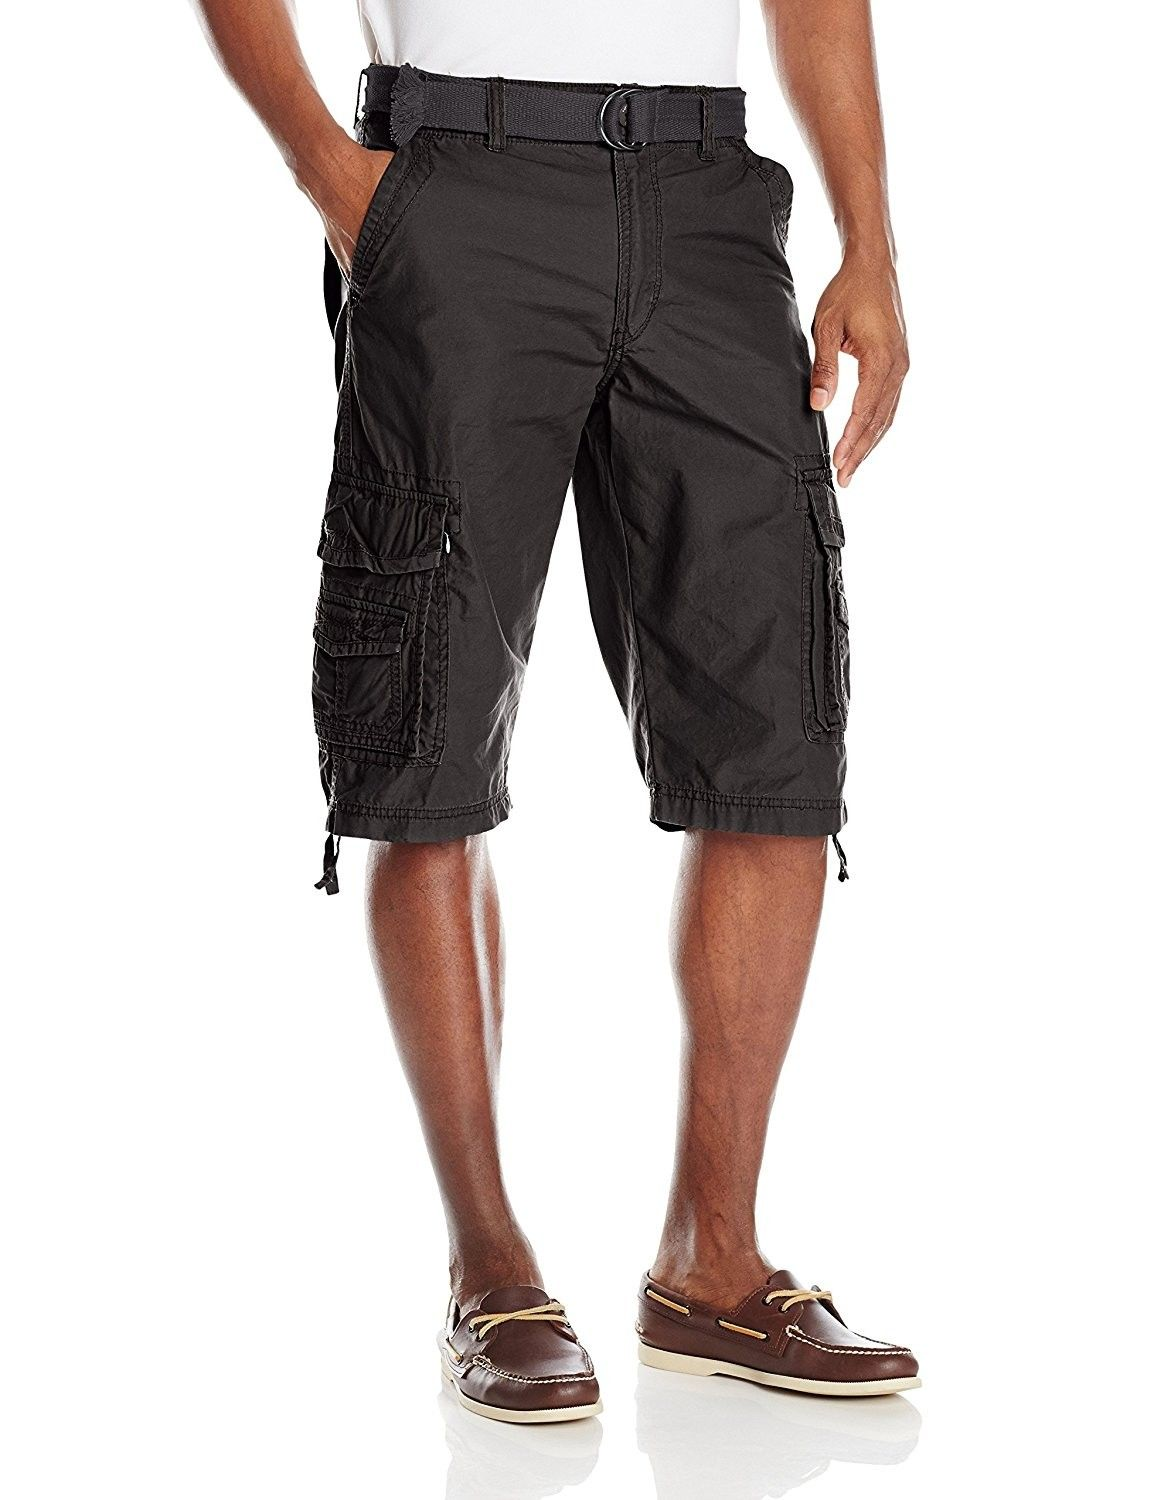 c0101dc2cf Men's Cordova Belted Messenger Cargo Short - Reg and Big and Tall Sizes -  Black - CU185ID05DK,Men's Clothing, Shorts #men #clothing #fashion #style  #gifts ...